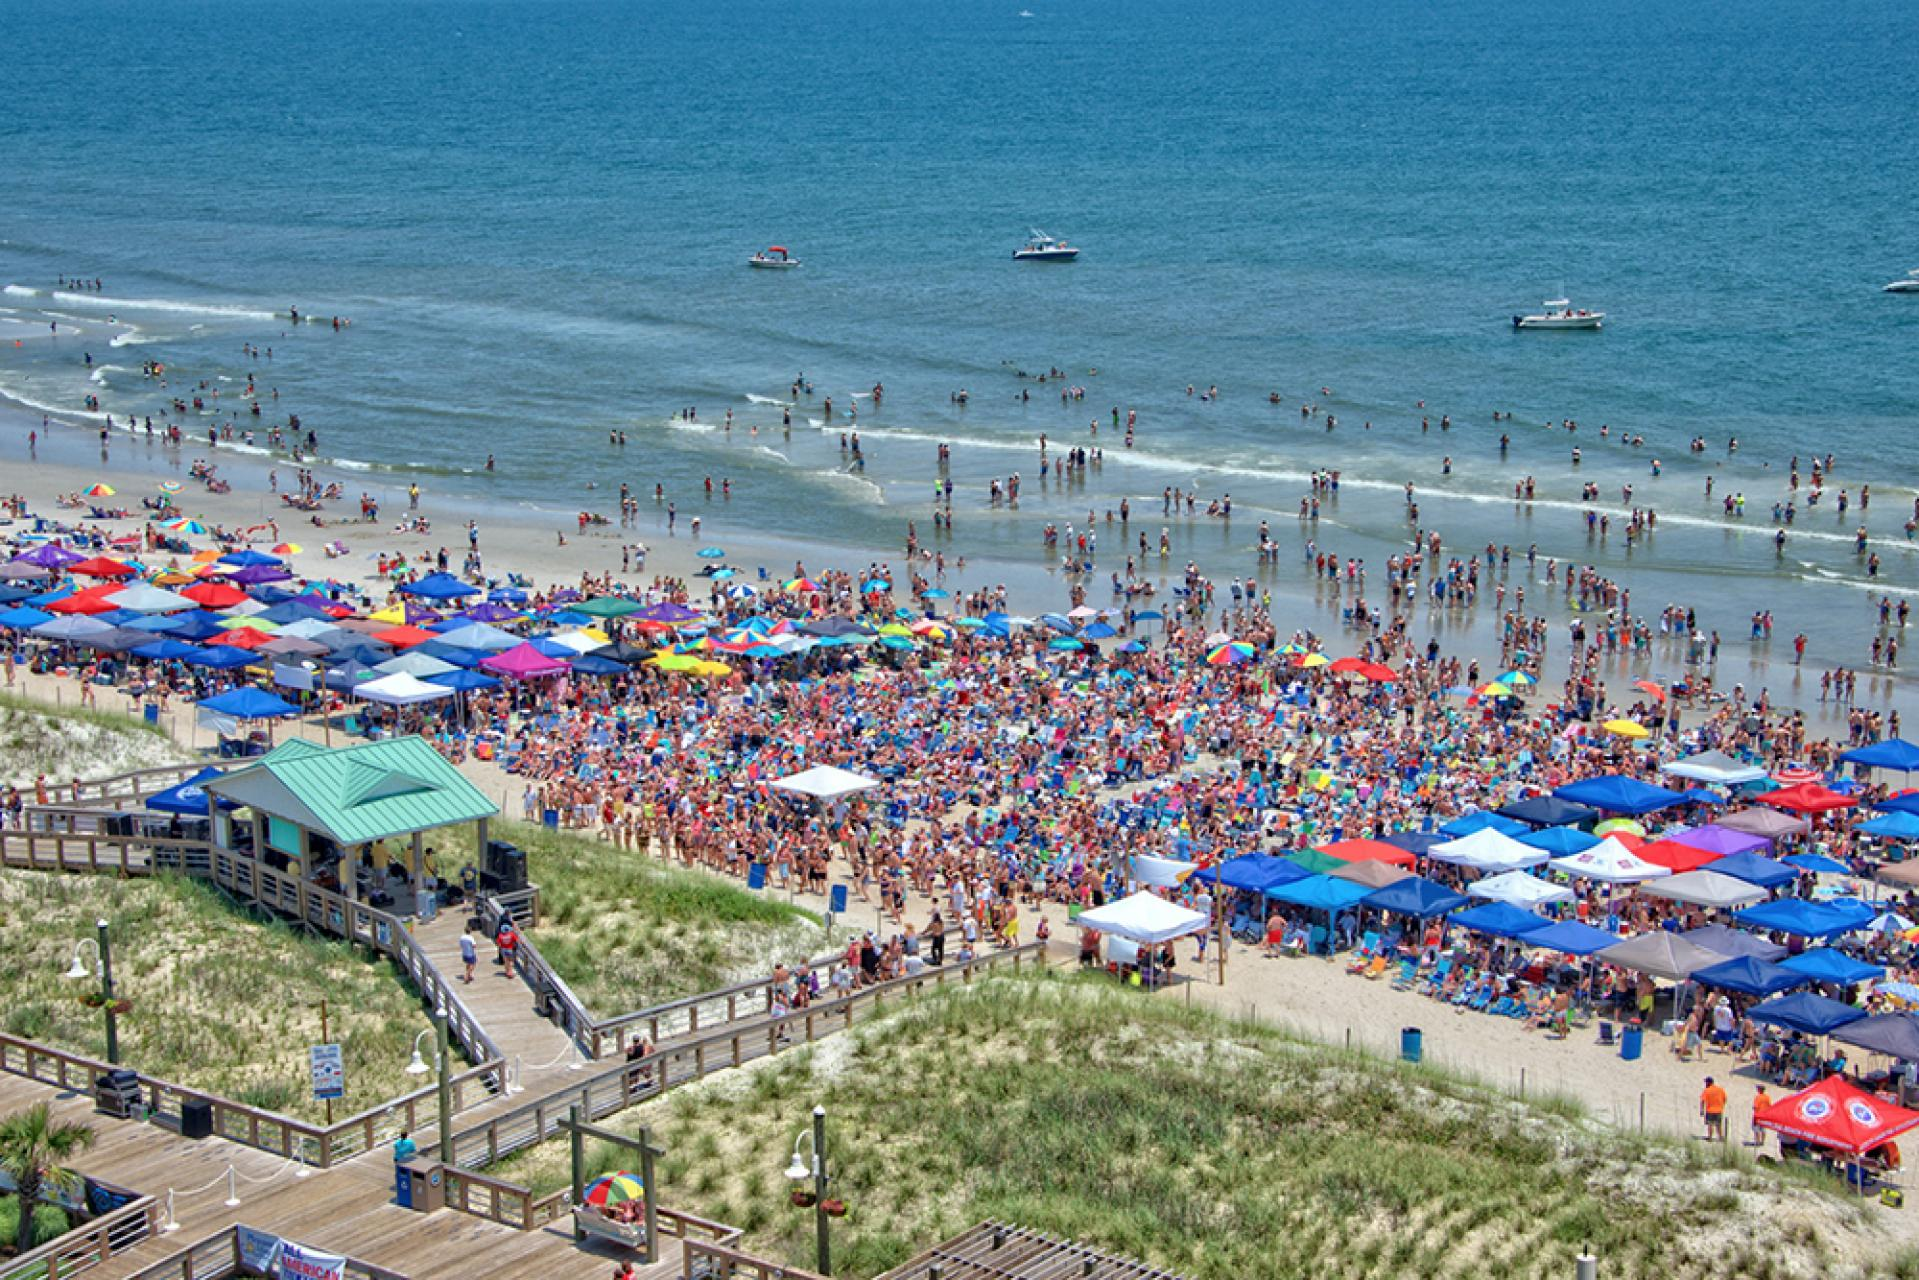 Carolina Beach packed full of music lovers